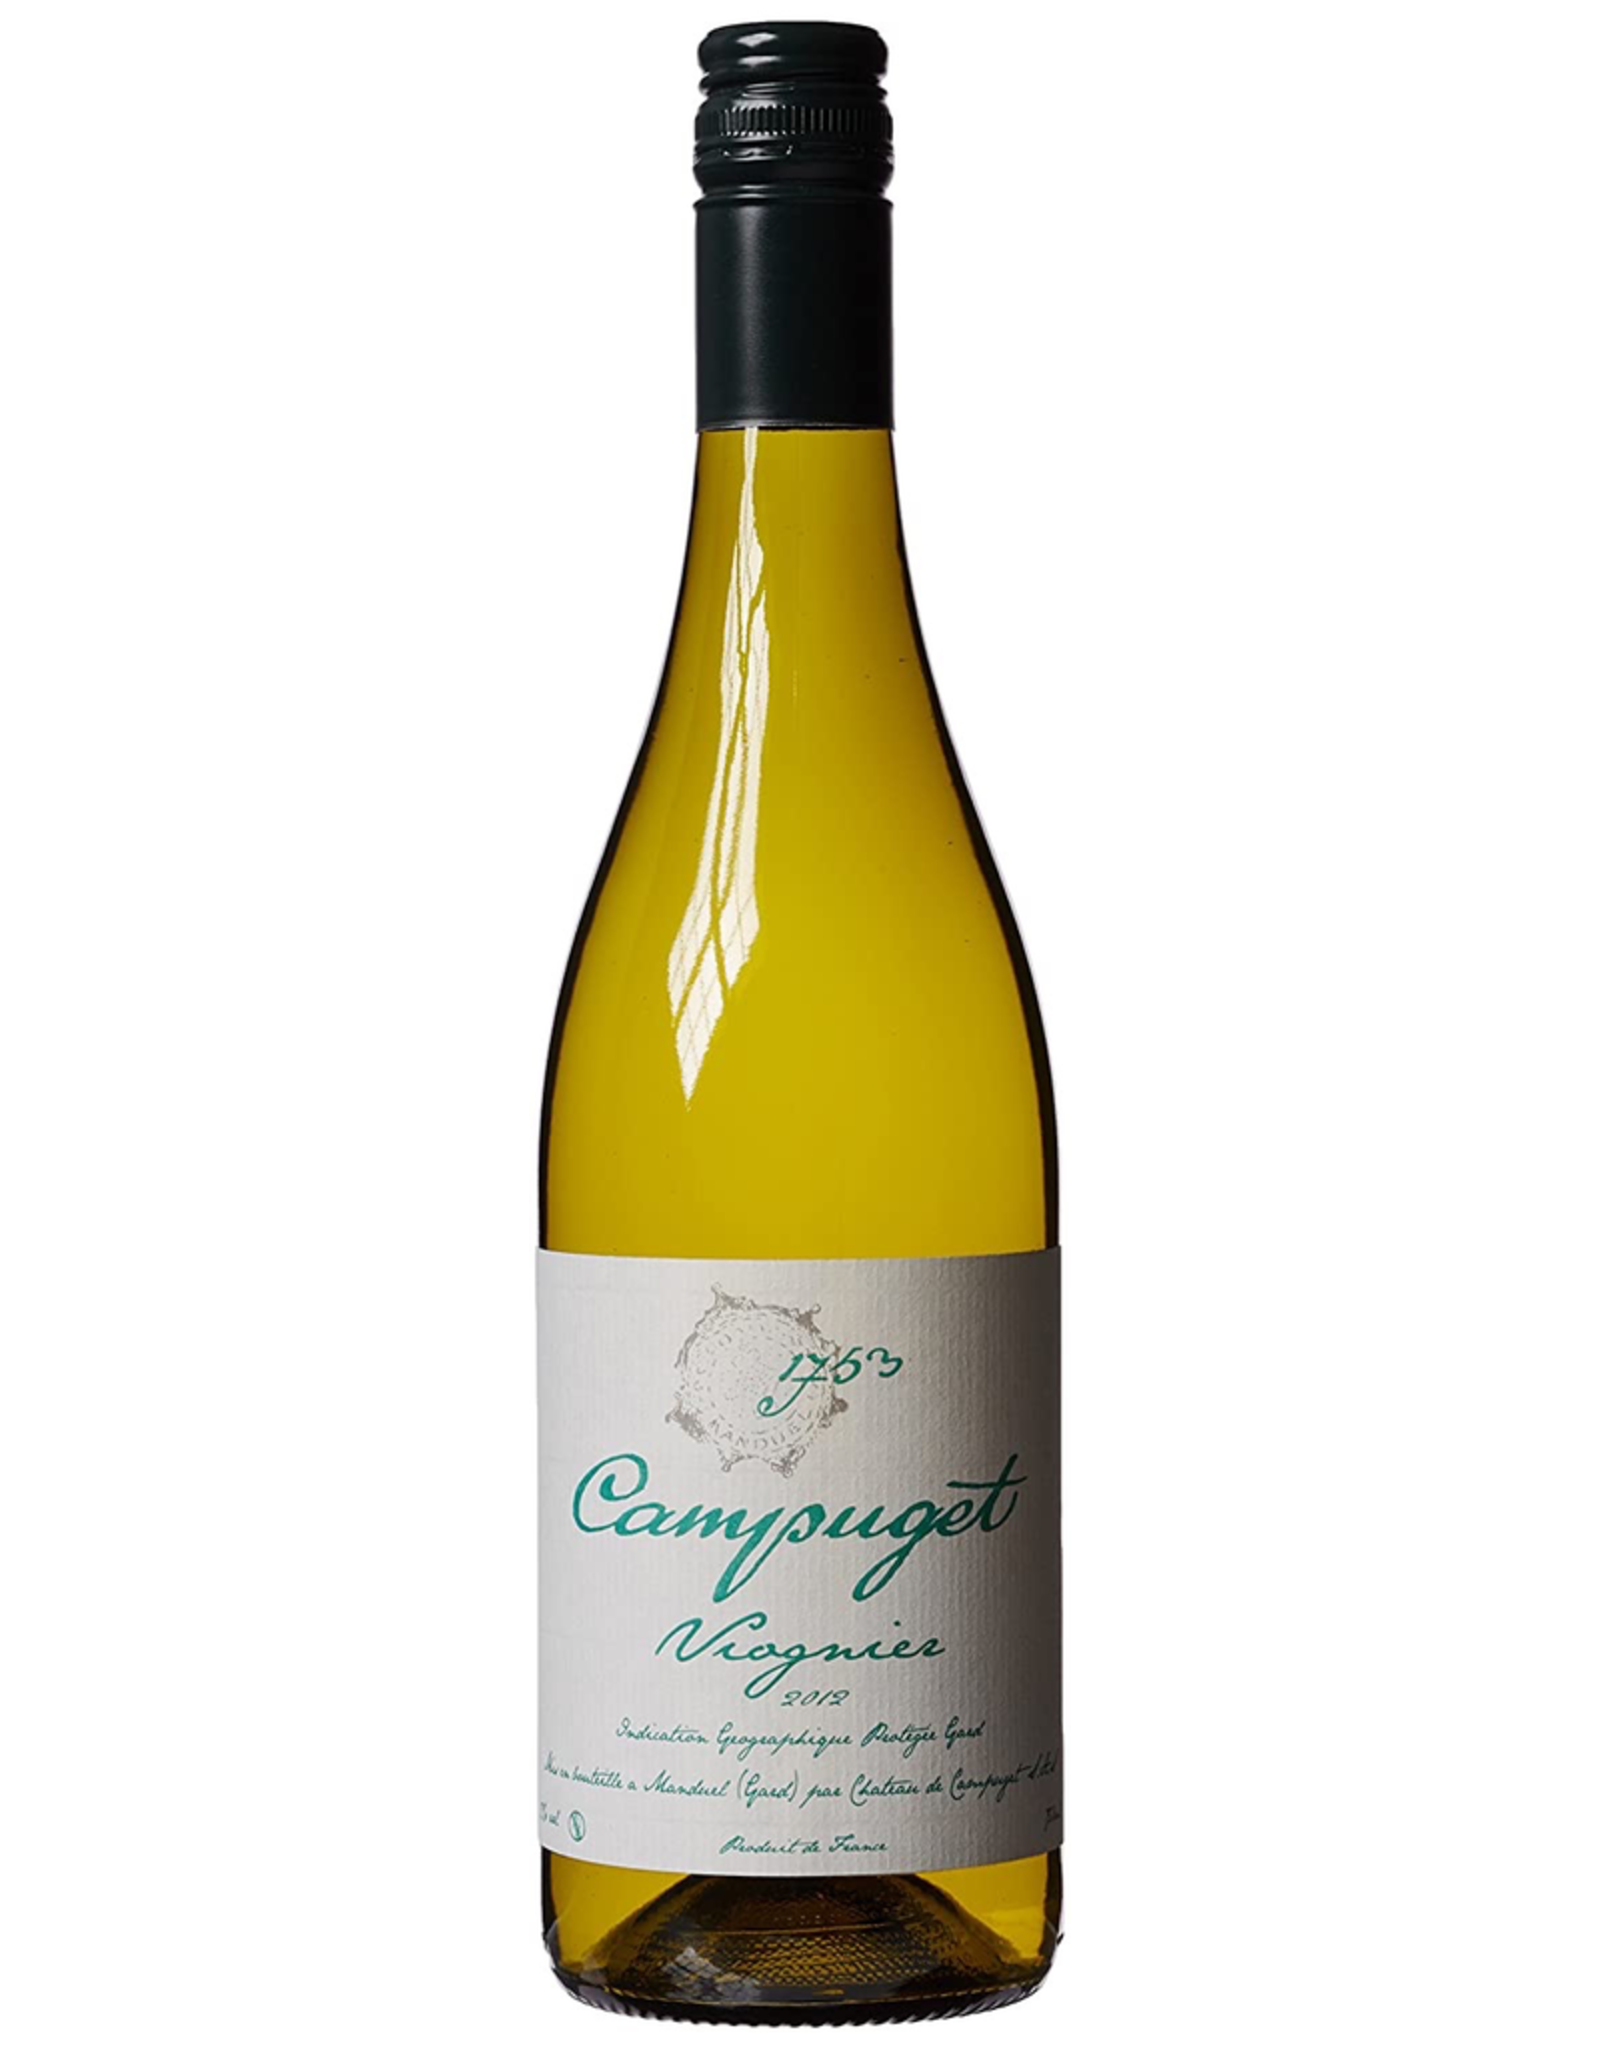 FlashSaleWine 2012, Campuget, Viognier, Languedoc-Roussillon, Southern Rhone, France, 13% Alc, CT87